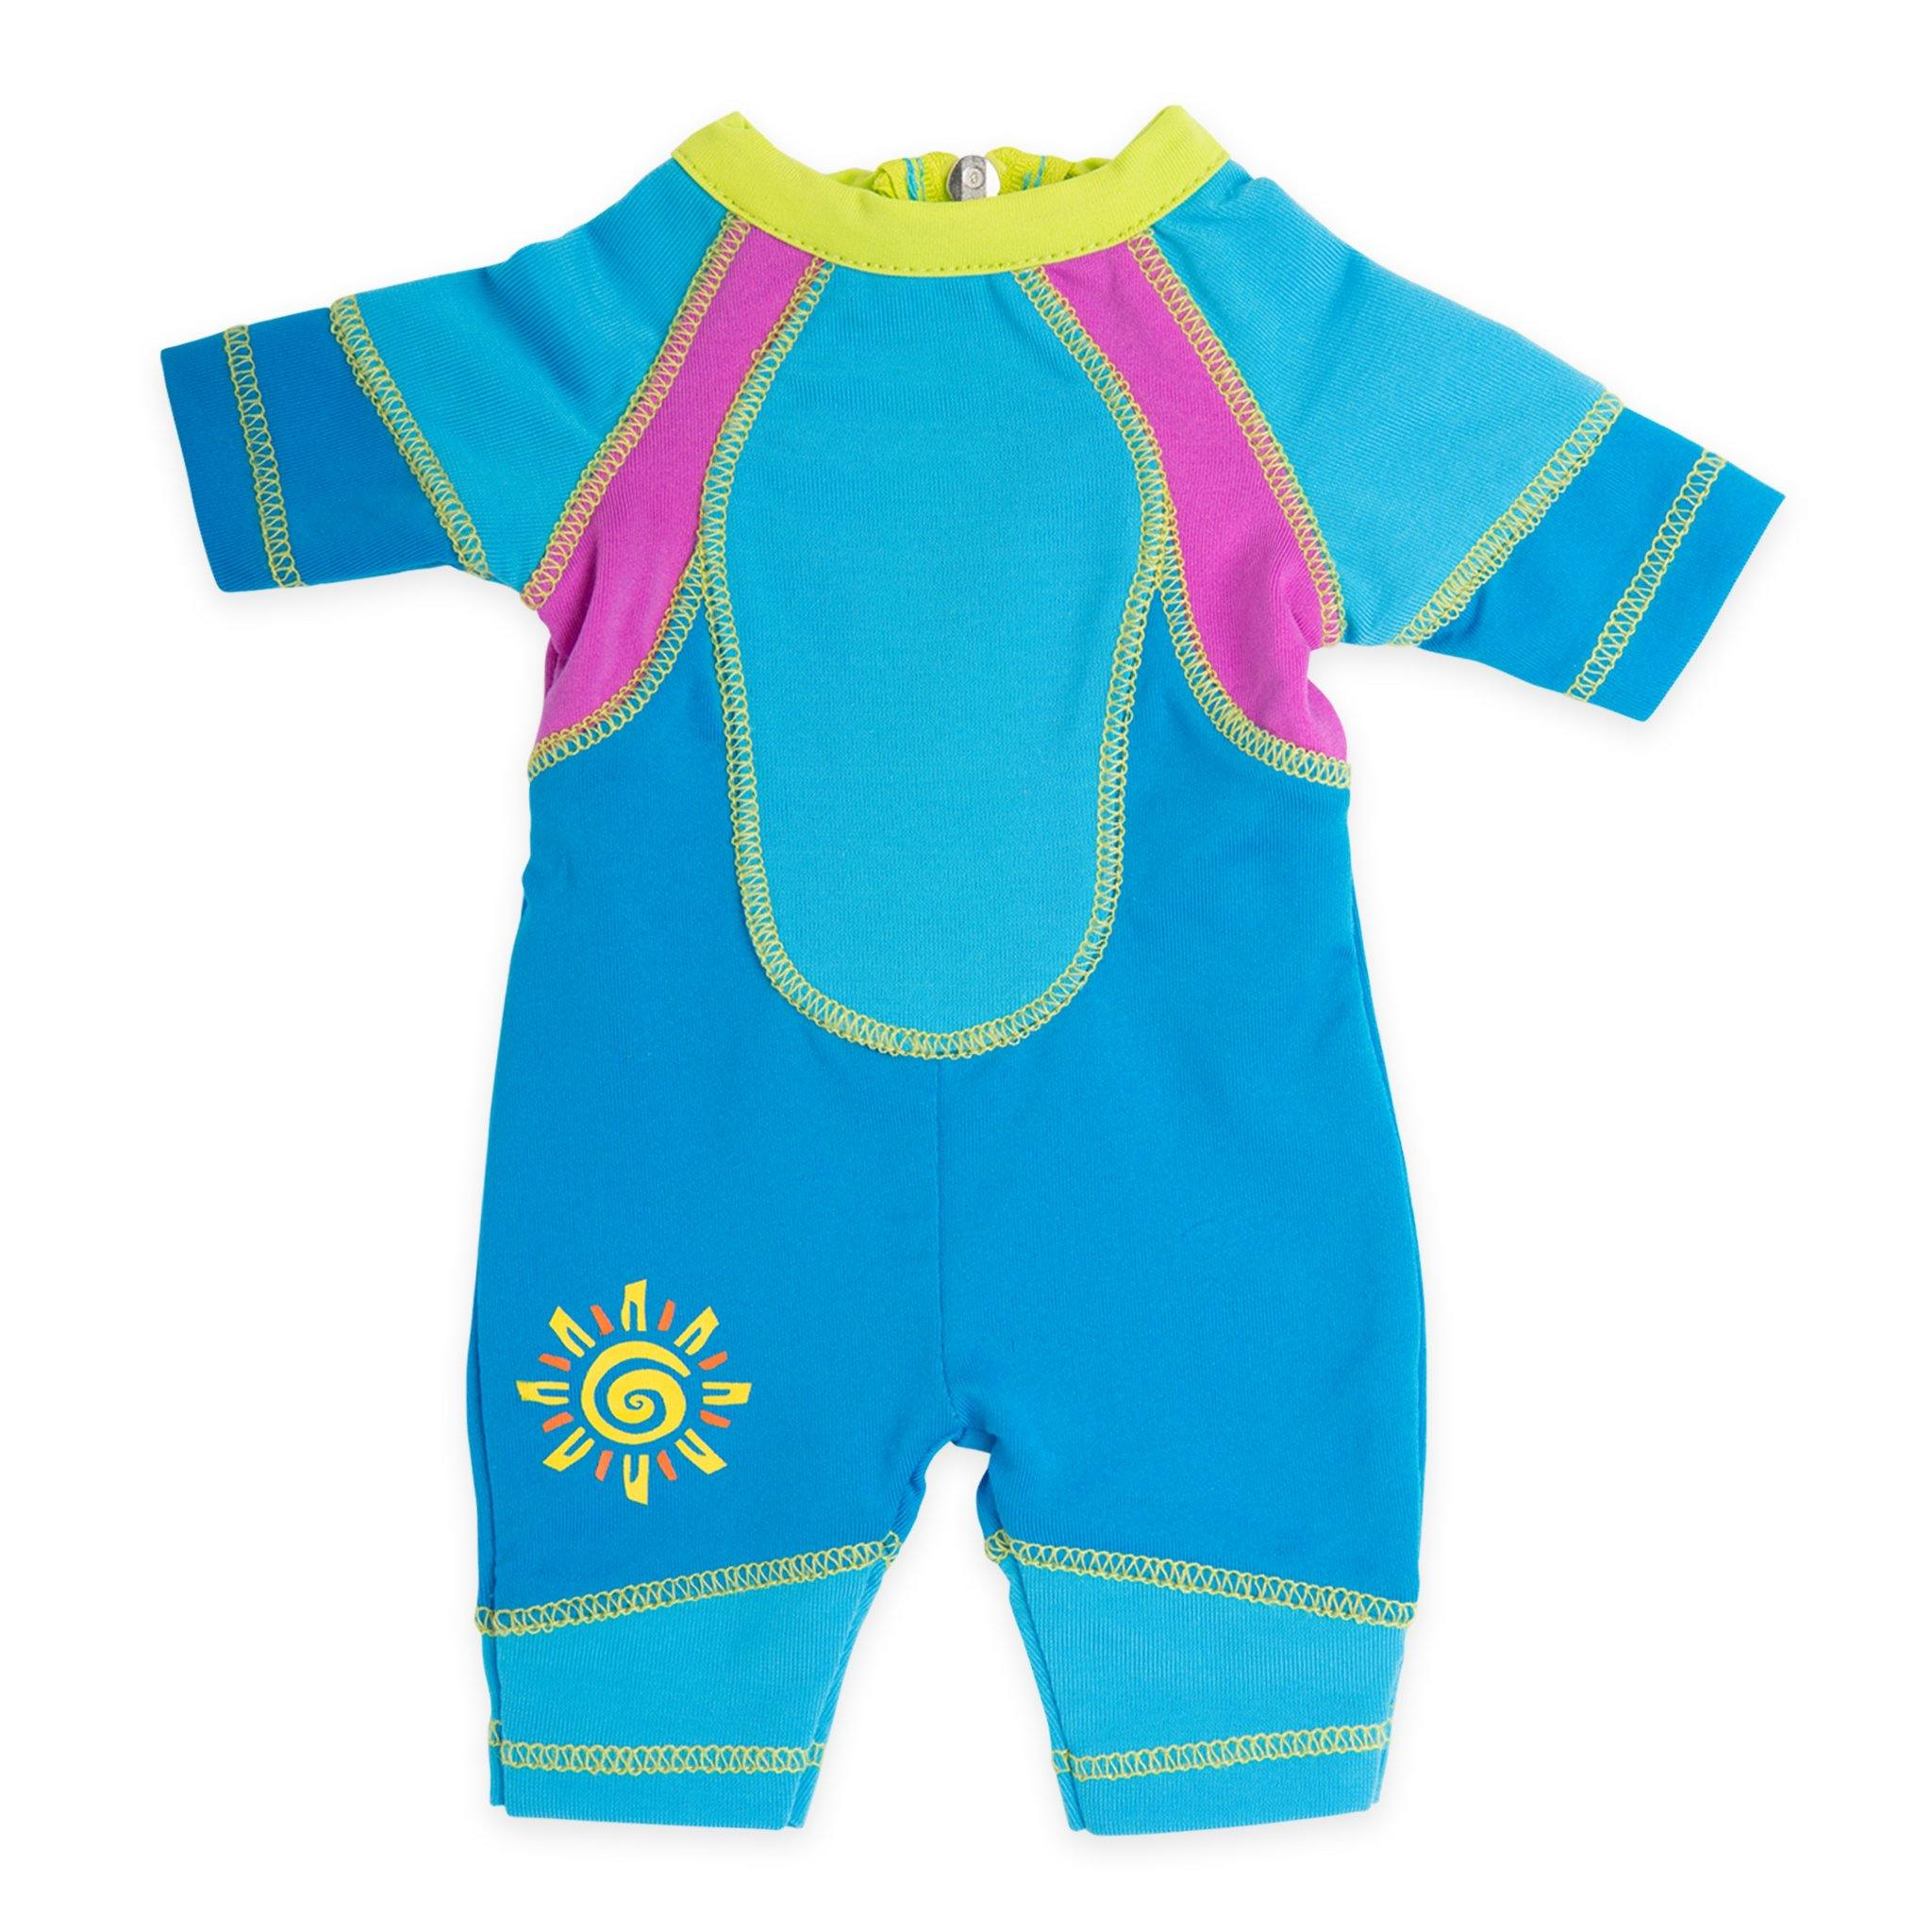 West Coast Waterwear two-tone blue wetsuit with bright green collar, sun graphic and pink accent fits all 18 inch dolls.